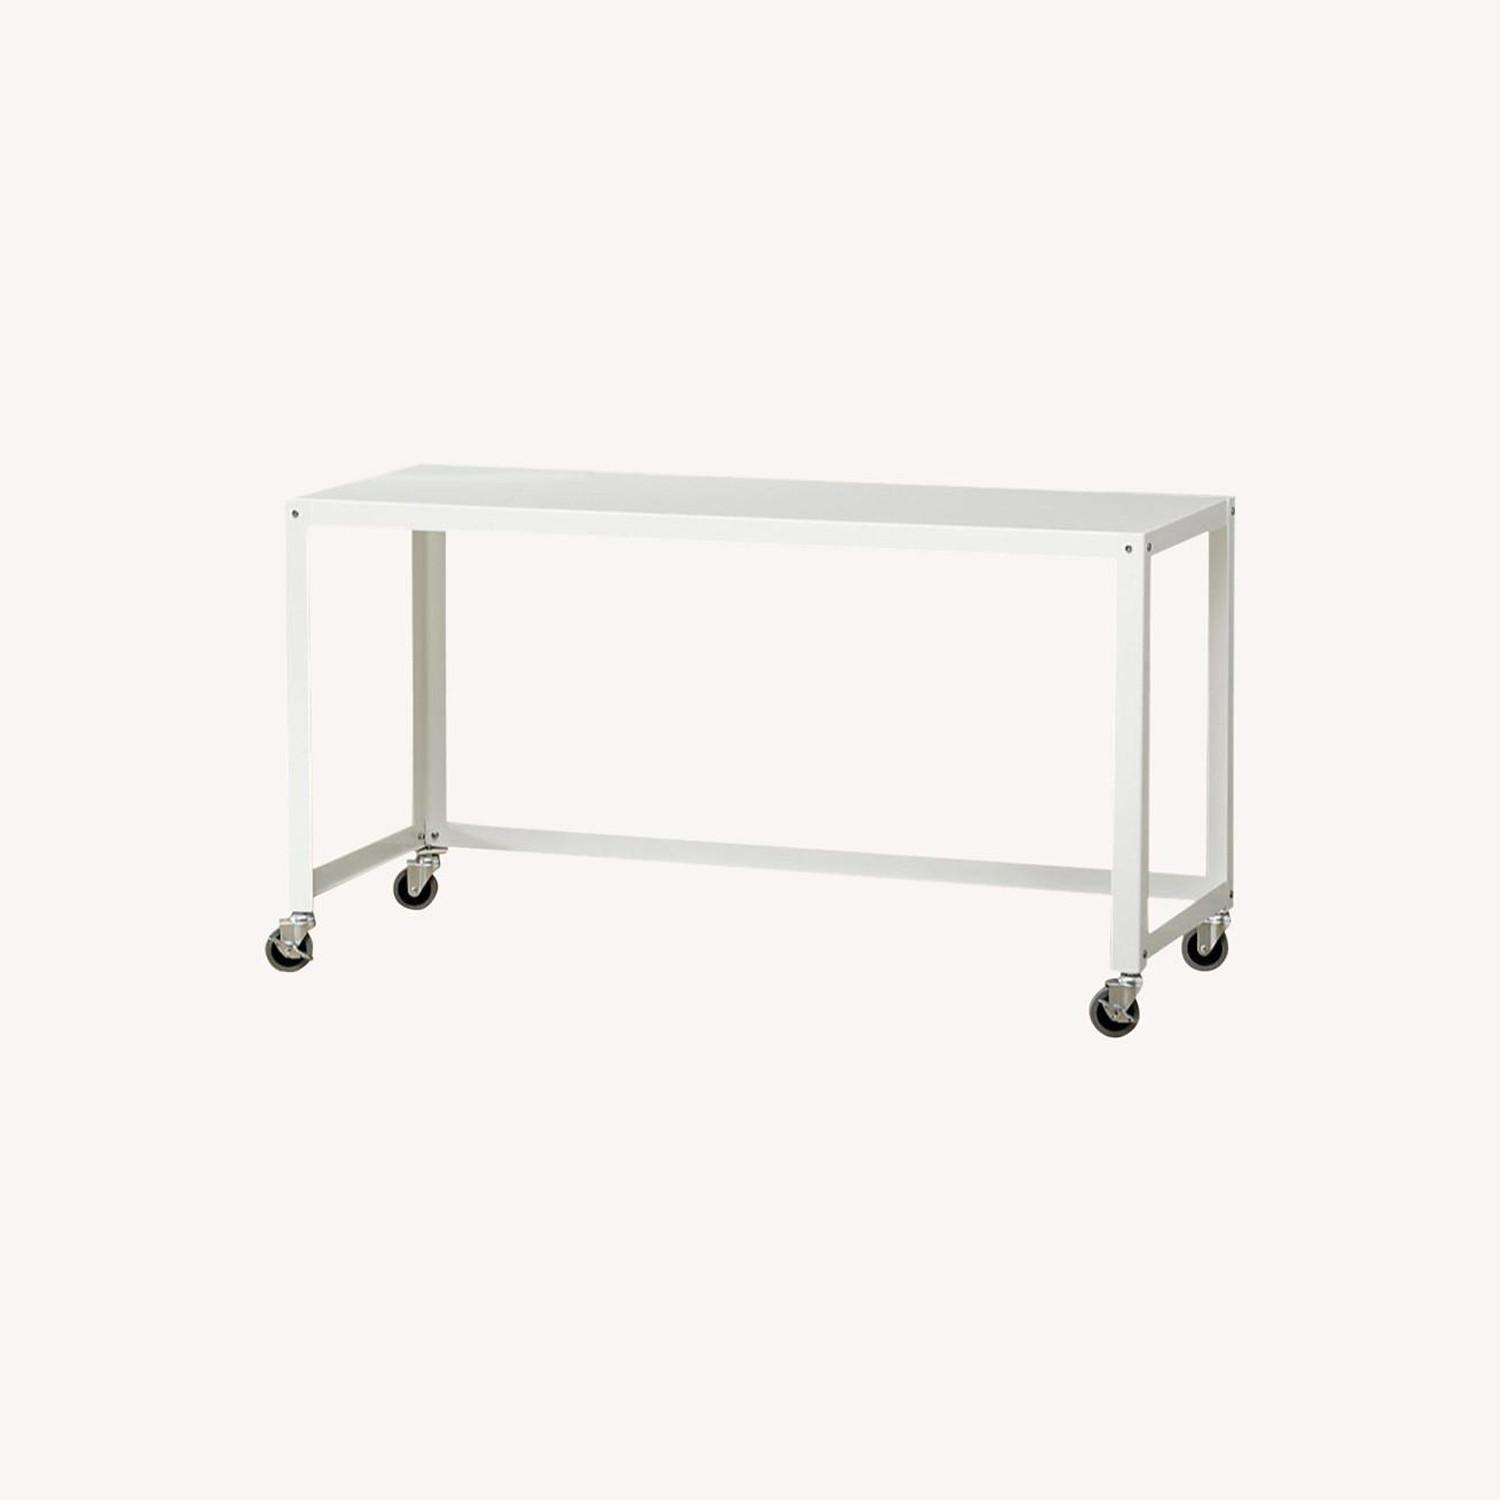 CB2 Go Cart Metal Rolling Desk  with Filing Cabinet - image-0